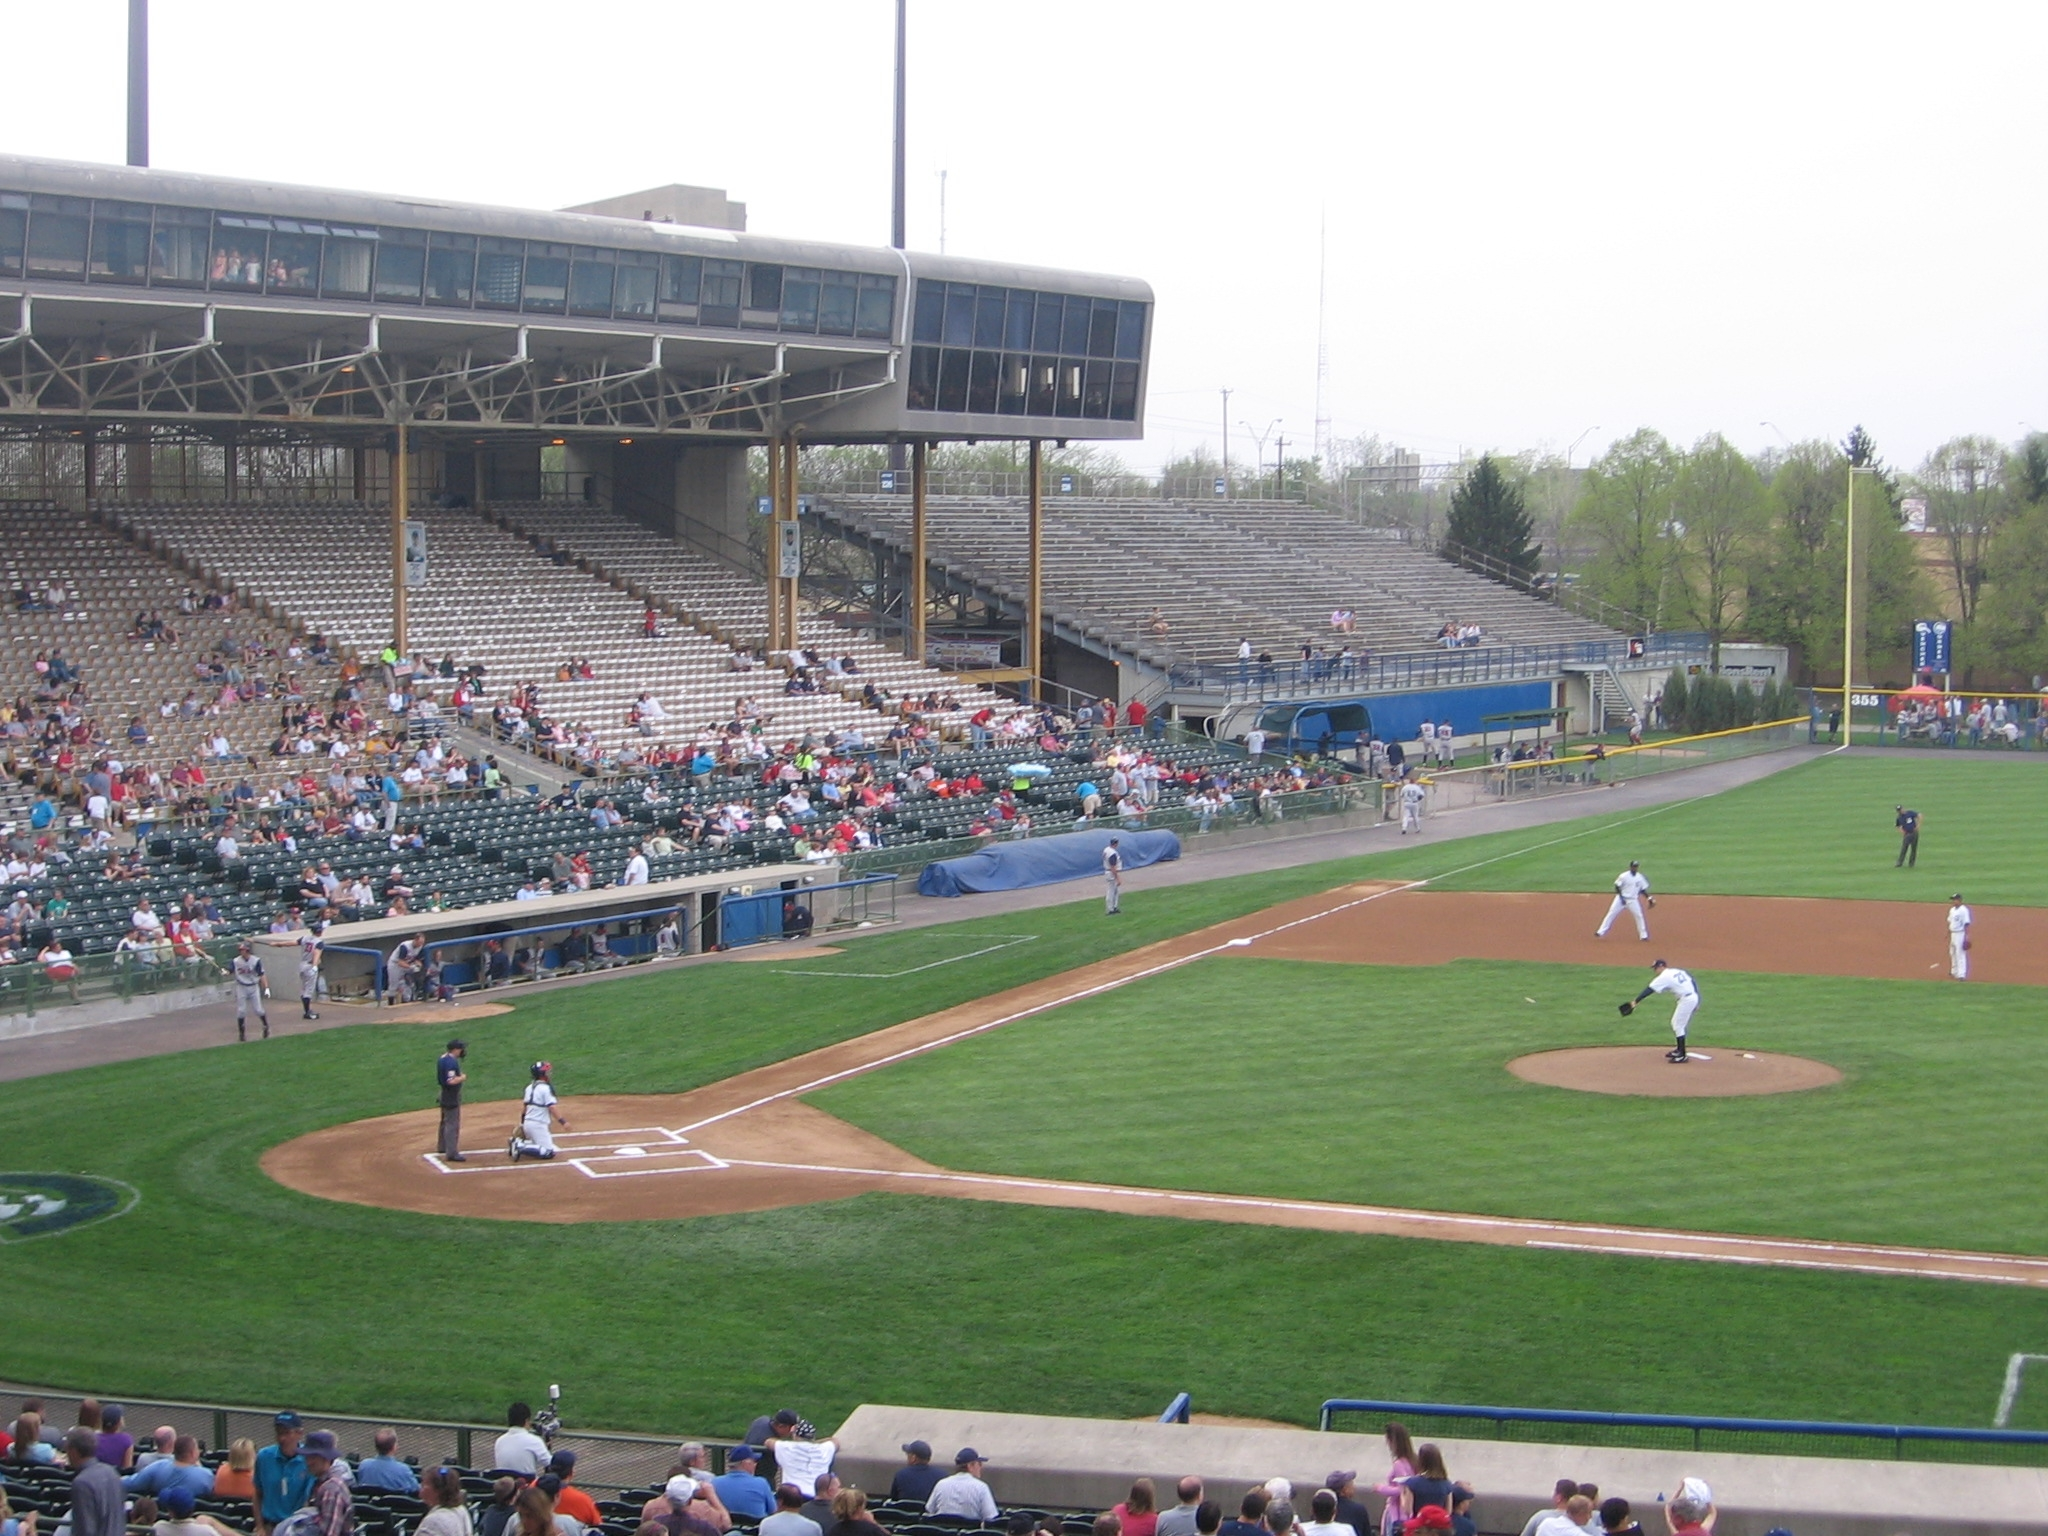 The Columbus Clippers playing at Cooper Stadium before leaving in 2009